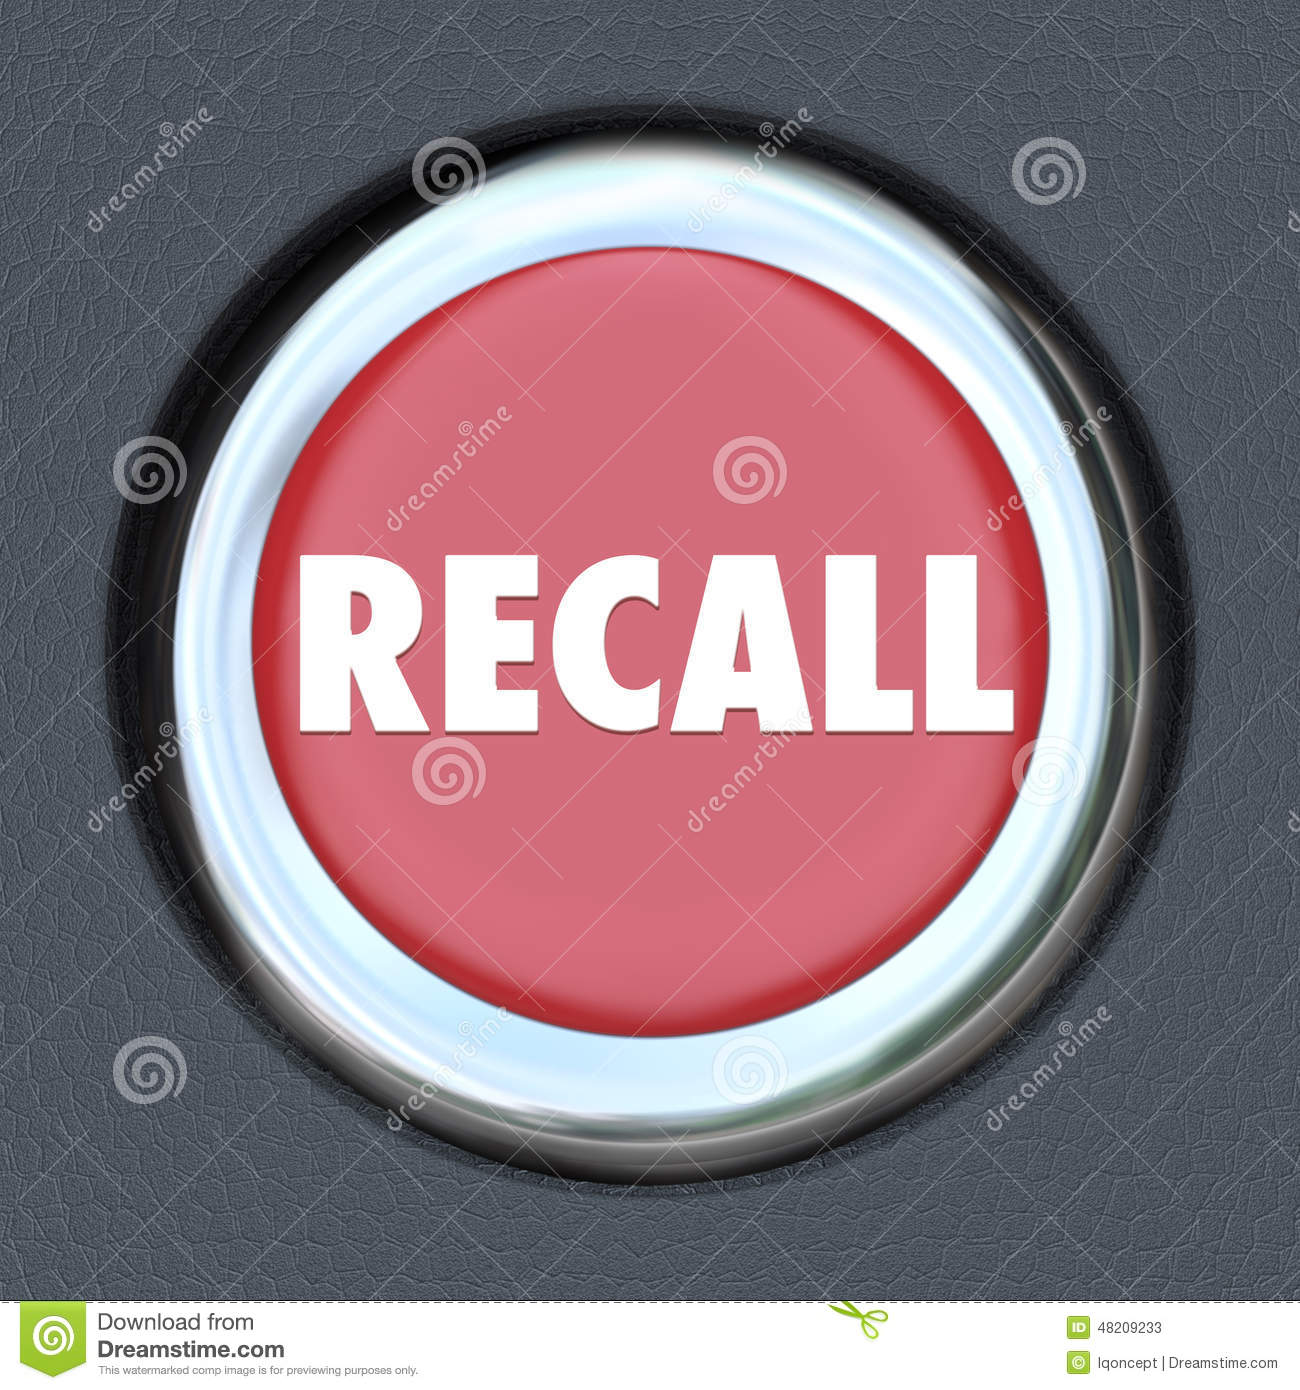 Recall Car Ignition Button Vehicle Repair Fix Defective